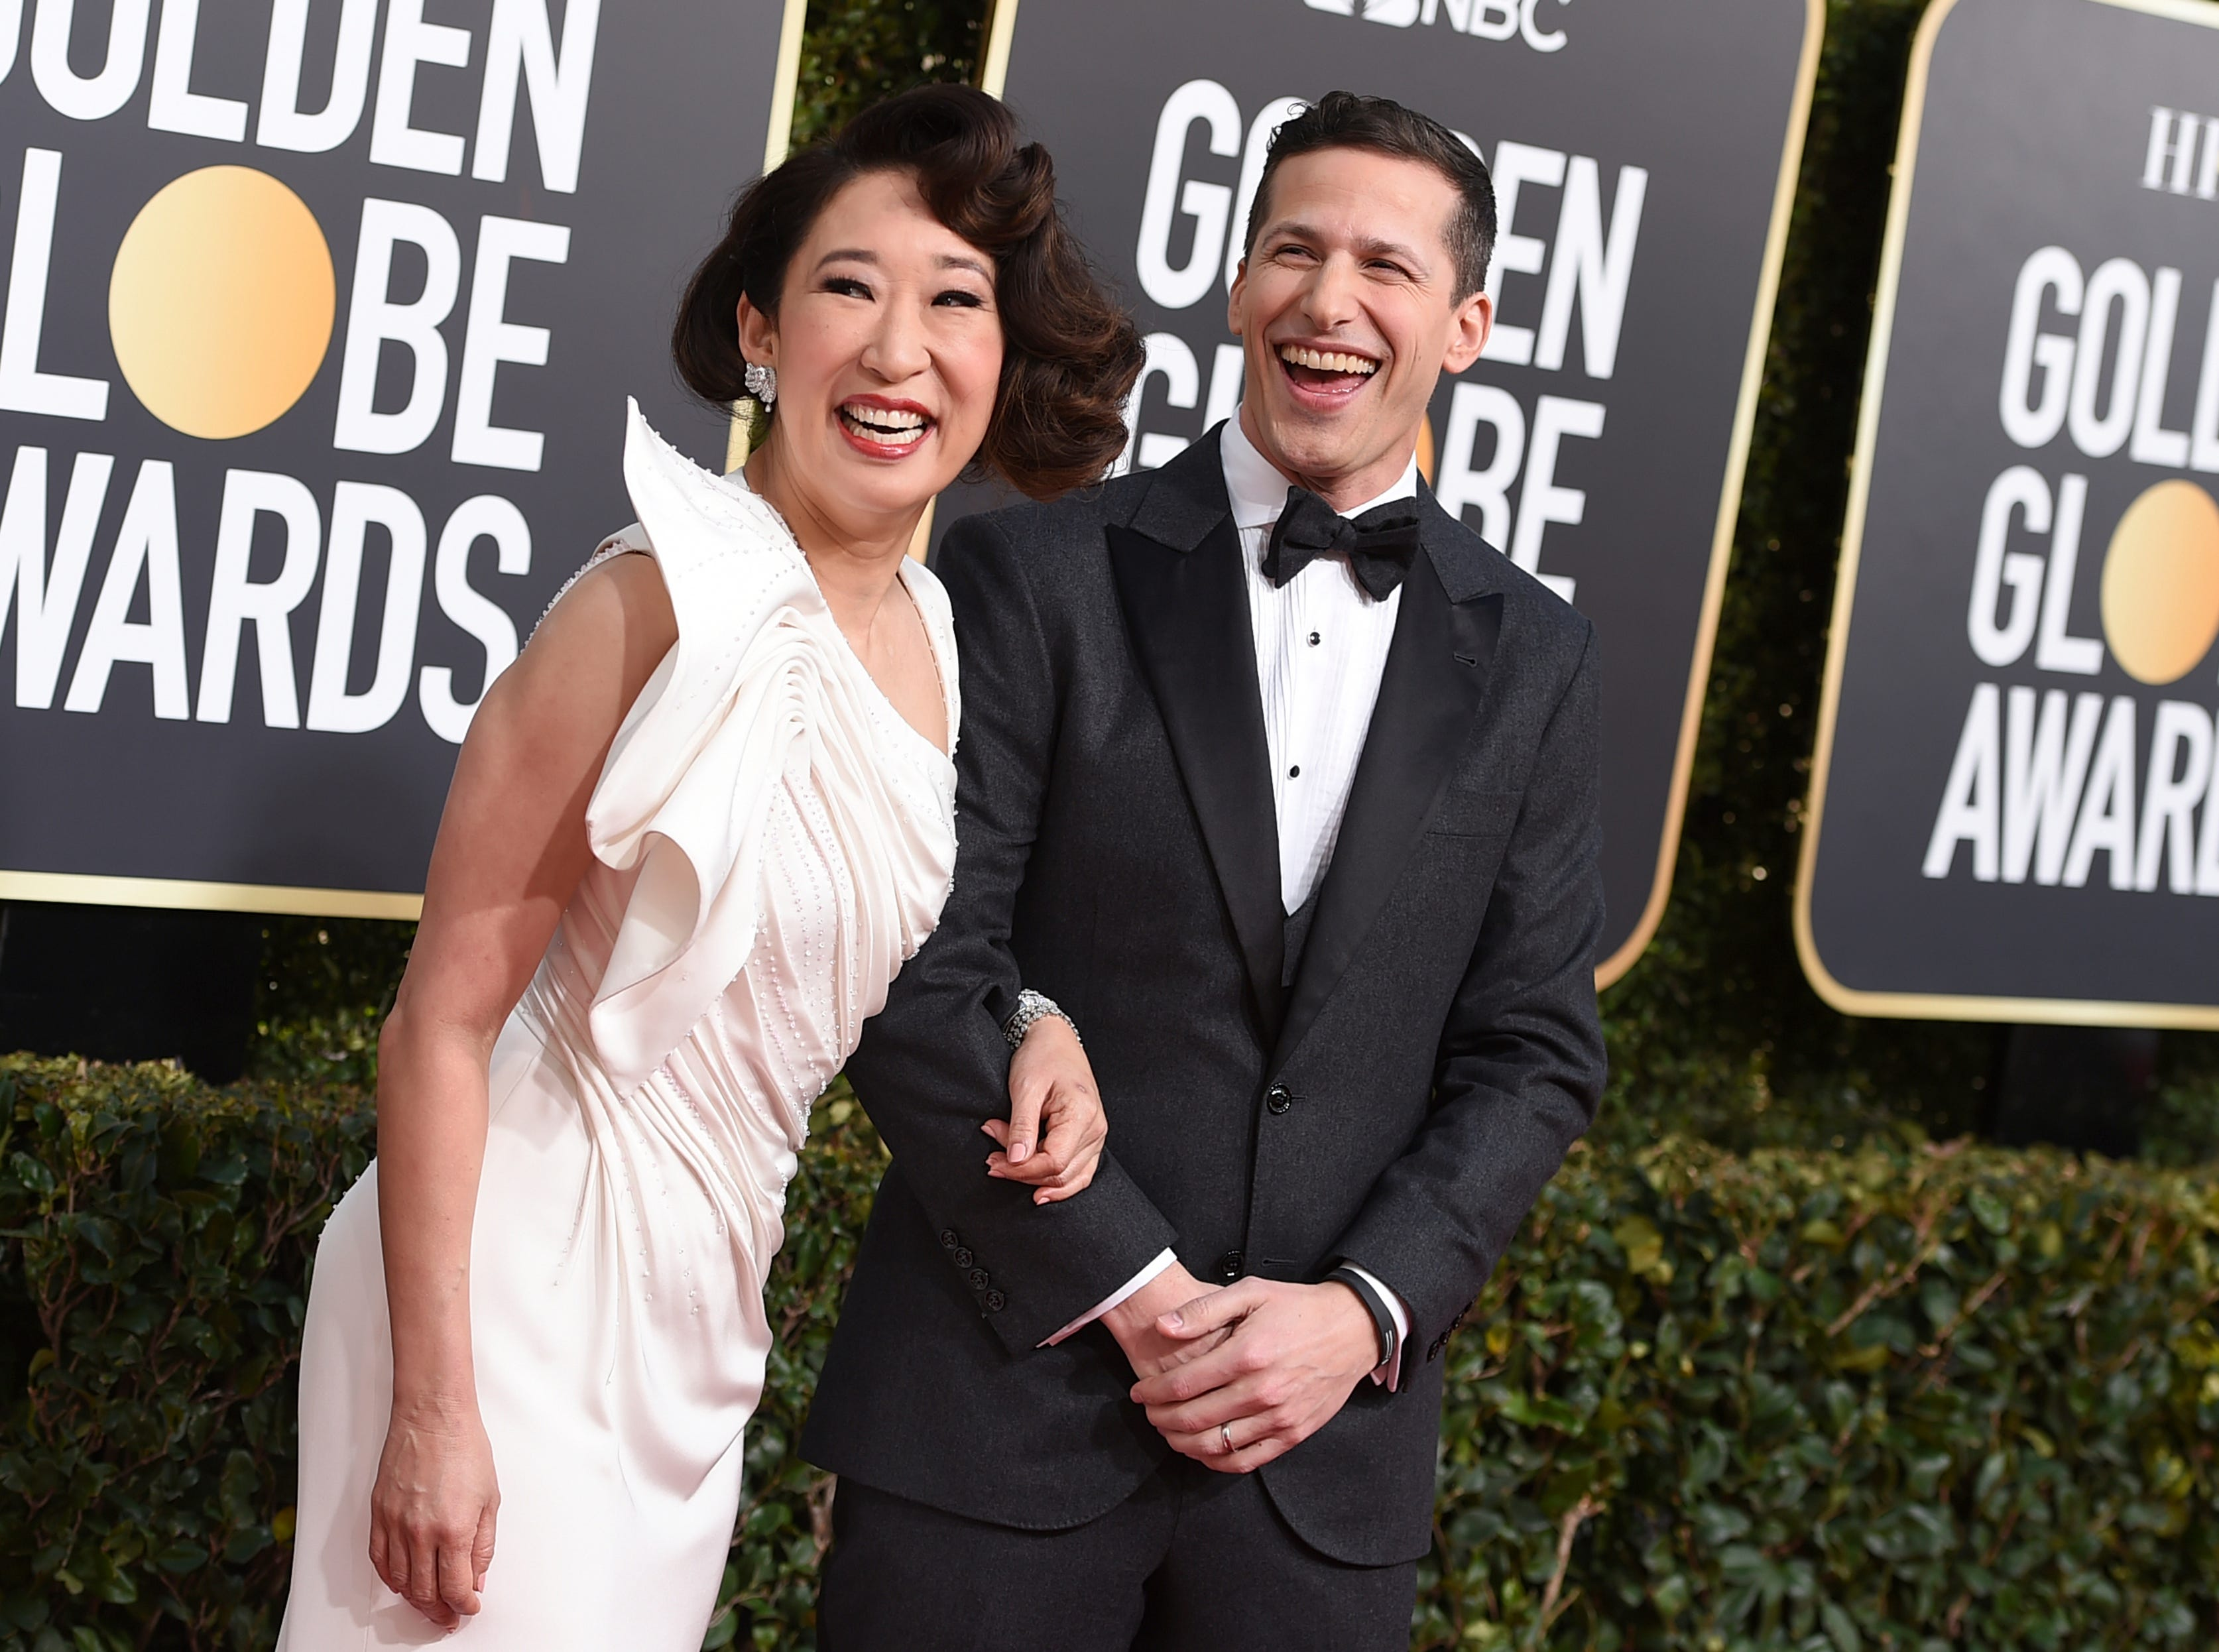 Hosts Sandra Oh, left, and Andy Samberg arrive at the 76th annual Golden Globe Awards at the Beverly Hilton Hotel on Sunday, Jan. 6, 2019, in Beverly Hills, Calif.